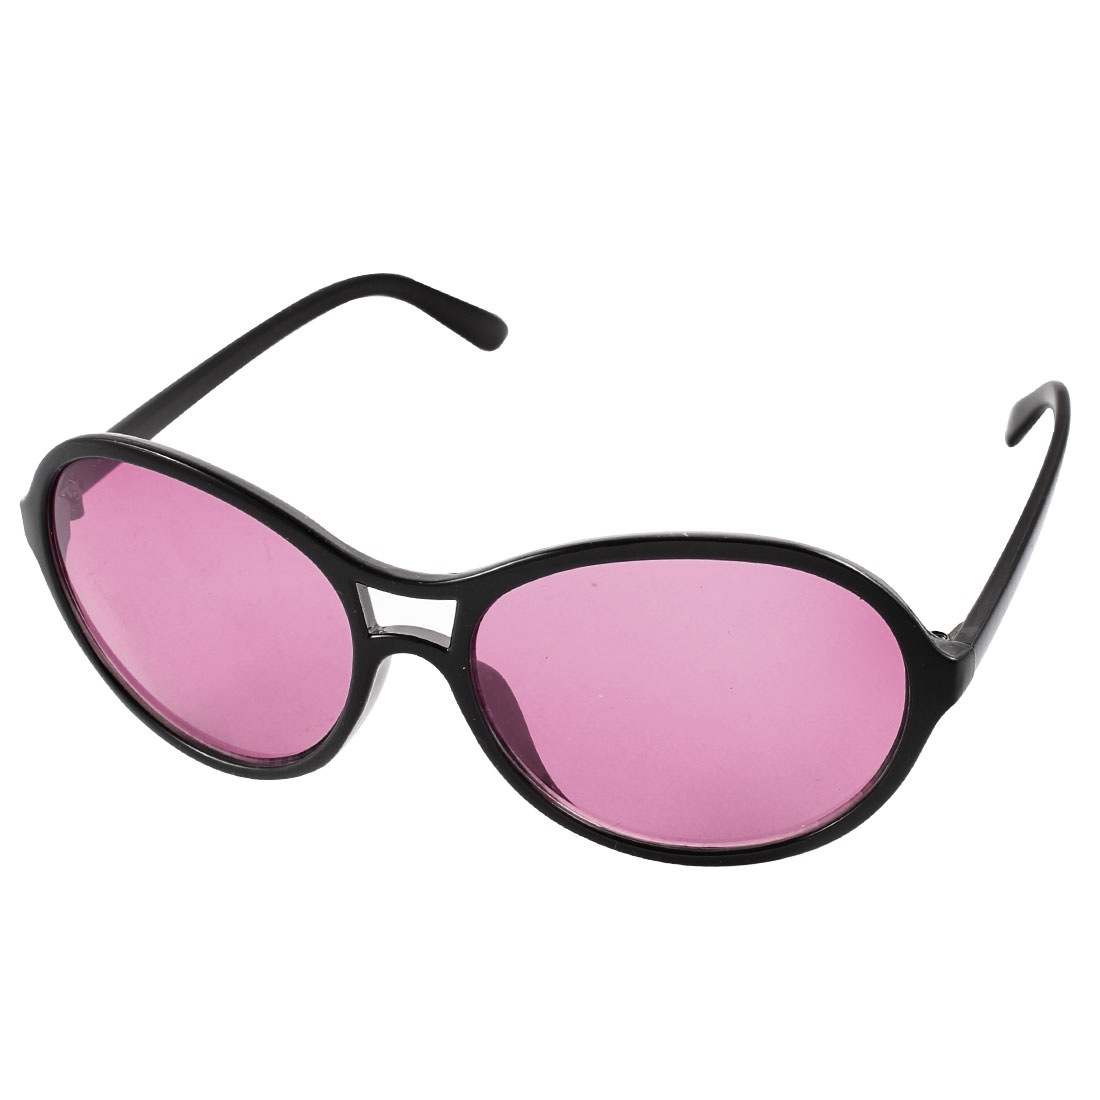 Lady Full Rim Slim Temple Outdoor Driving Eyewear Sunglasses Purple